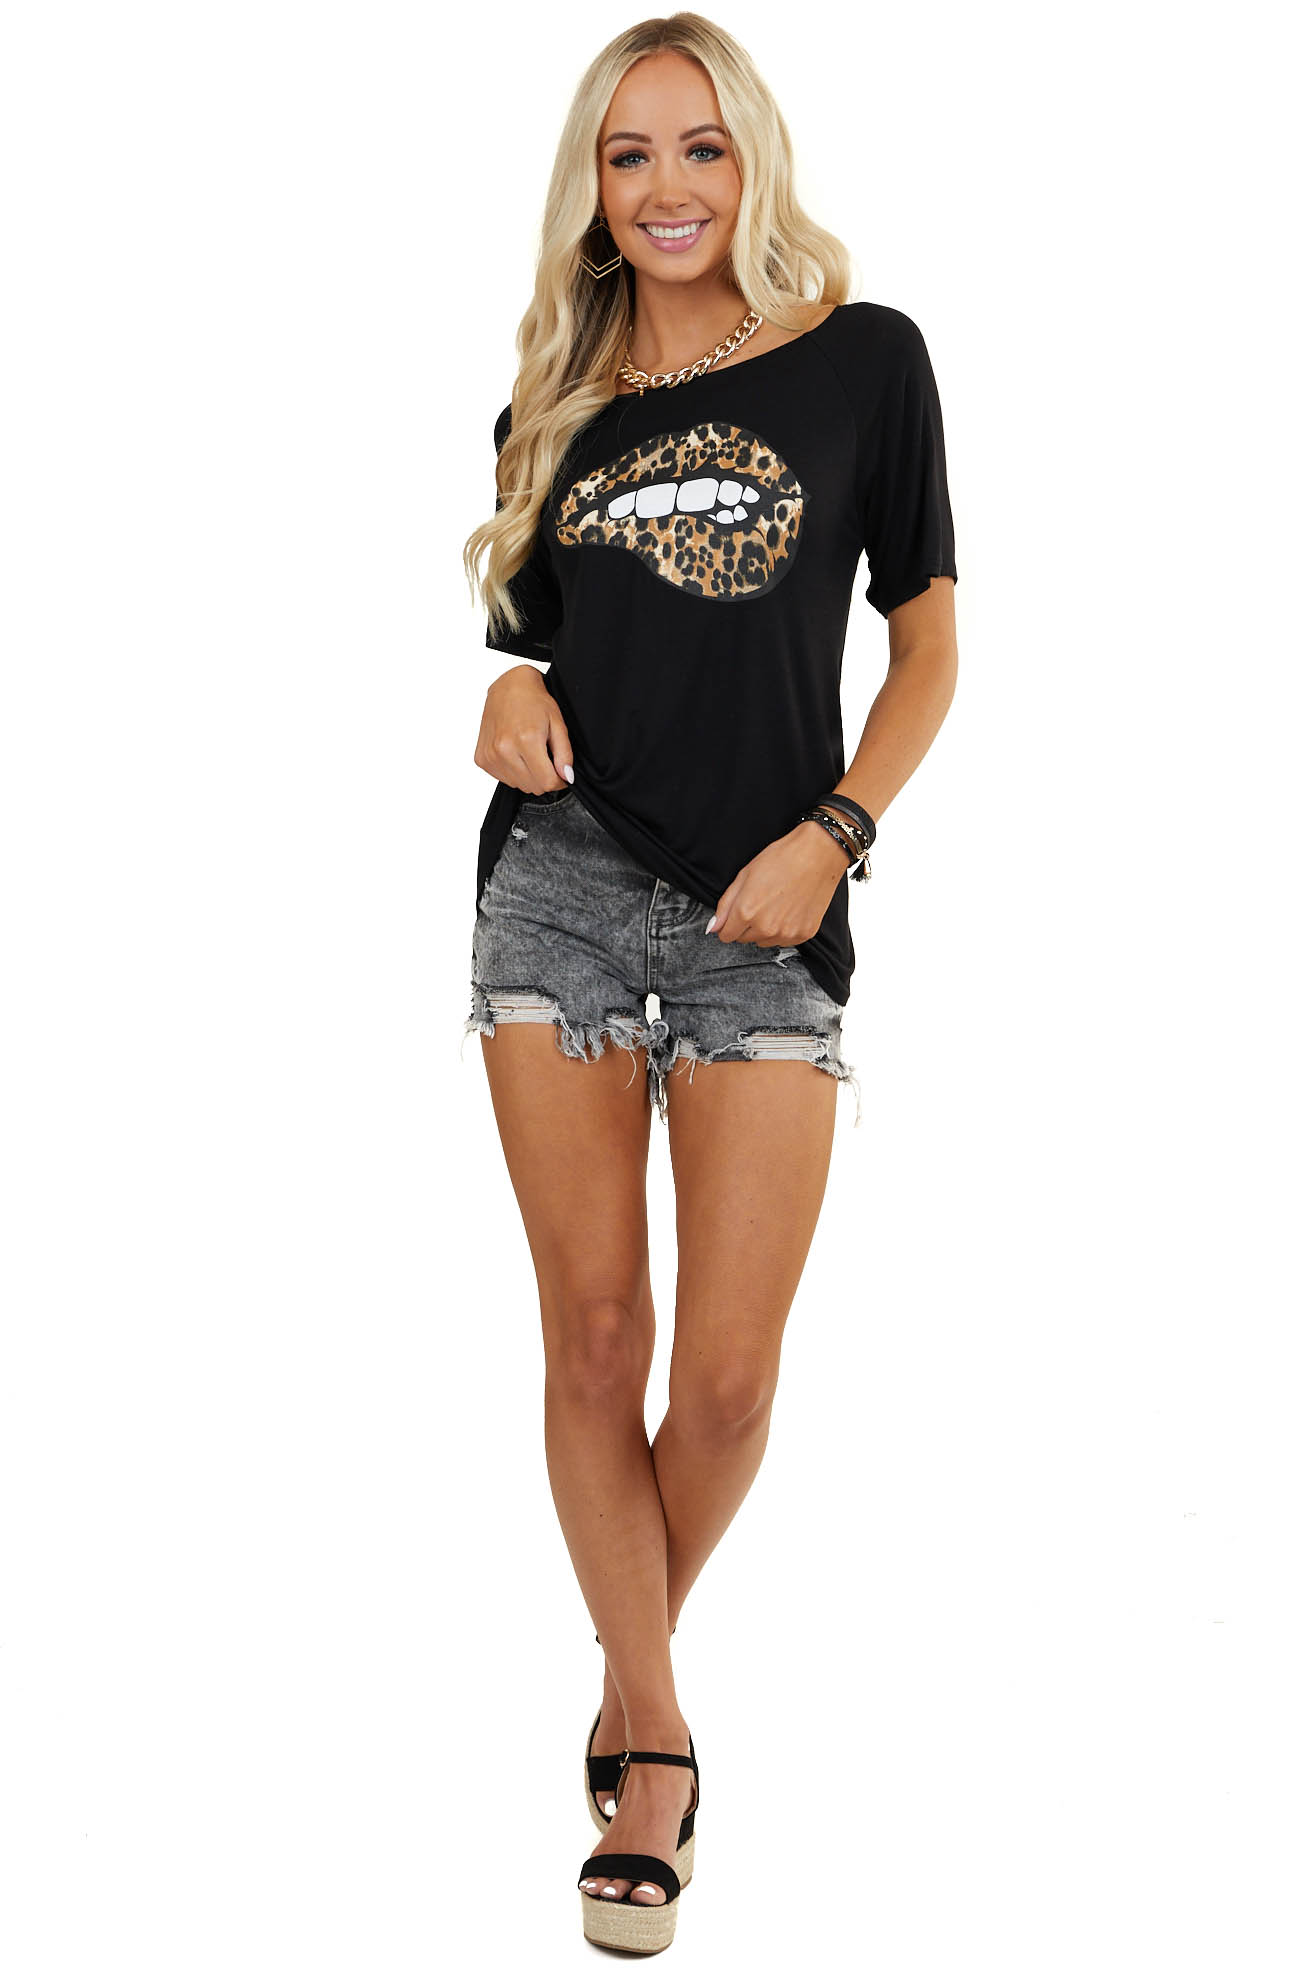 Black Short Sleeve Top with Leopard Print Lip Graphic